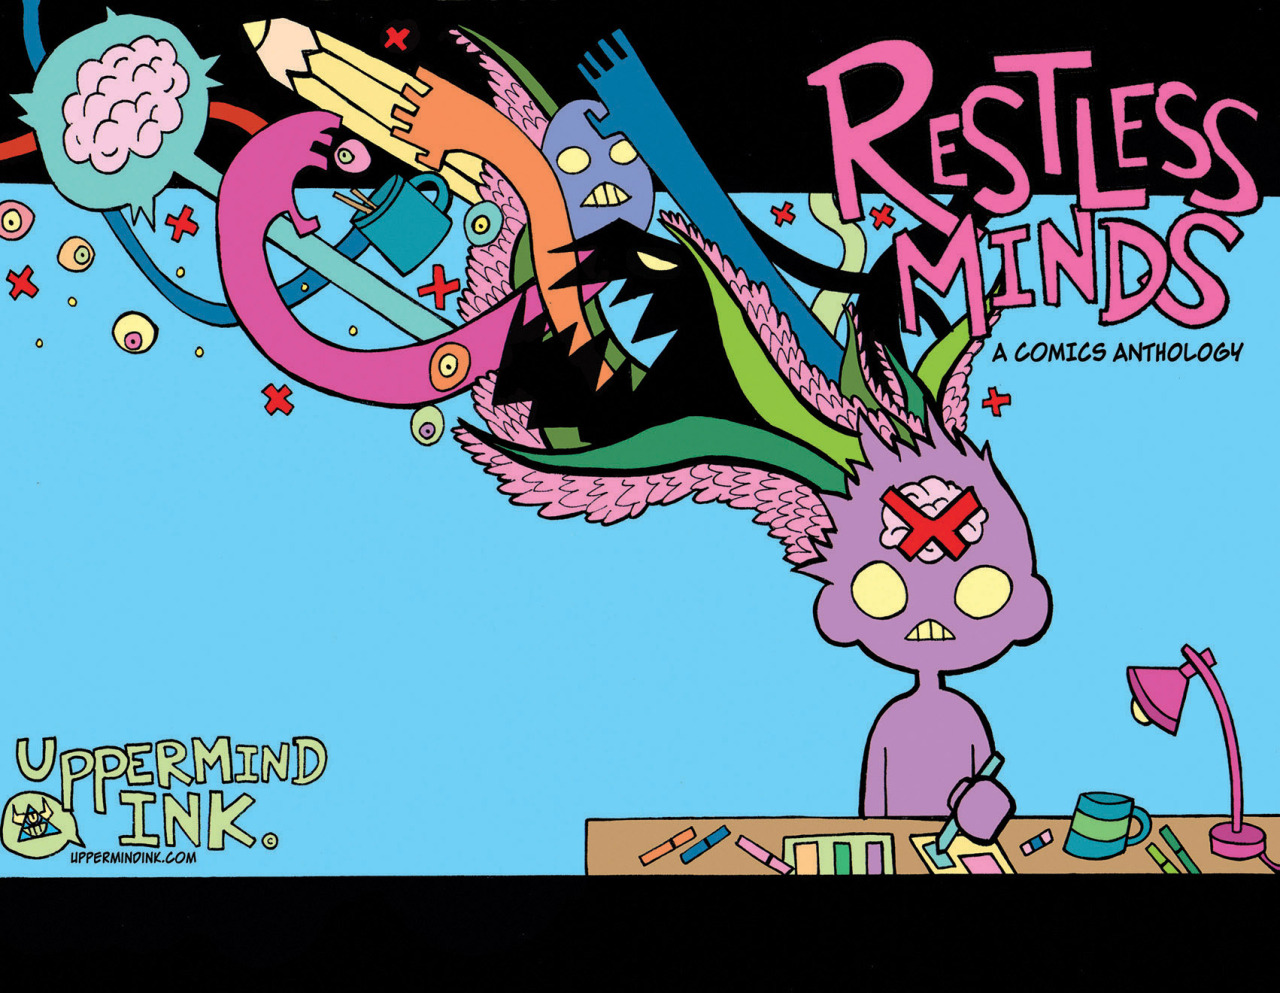 Anxiety clipart restlessness. Uppermind ink restless minds